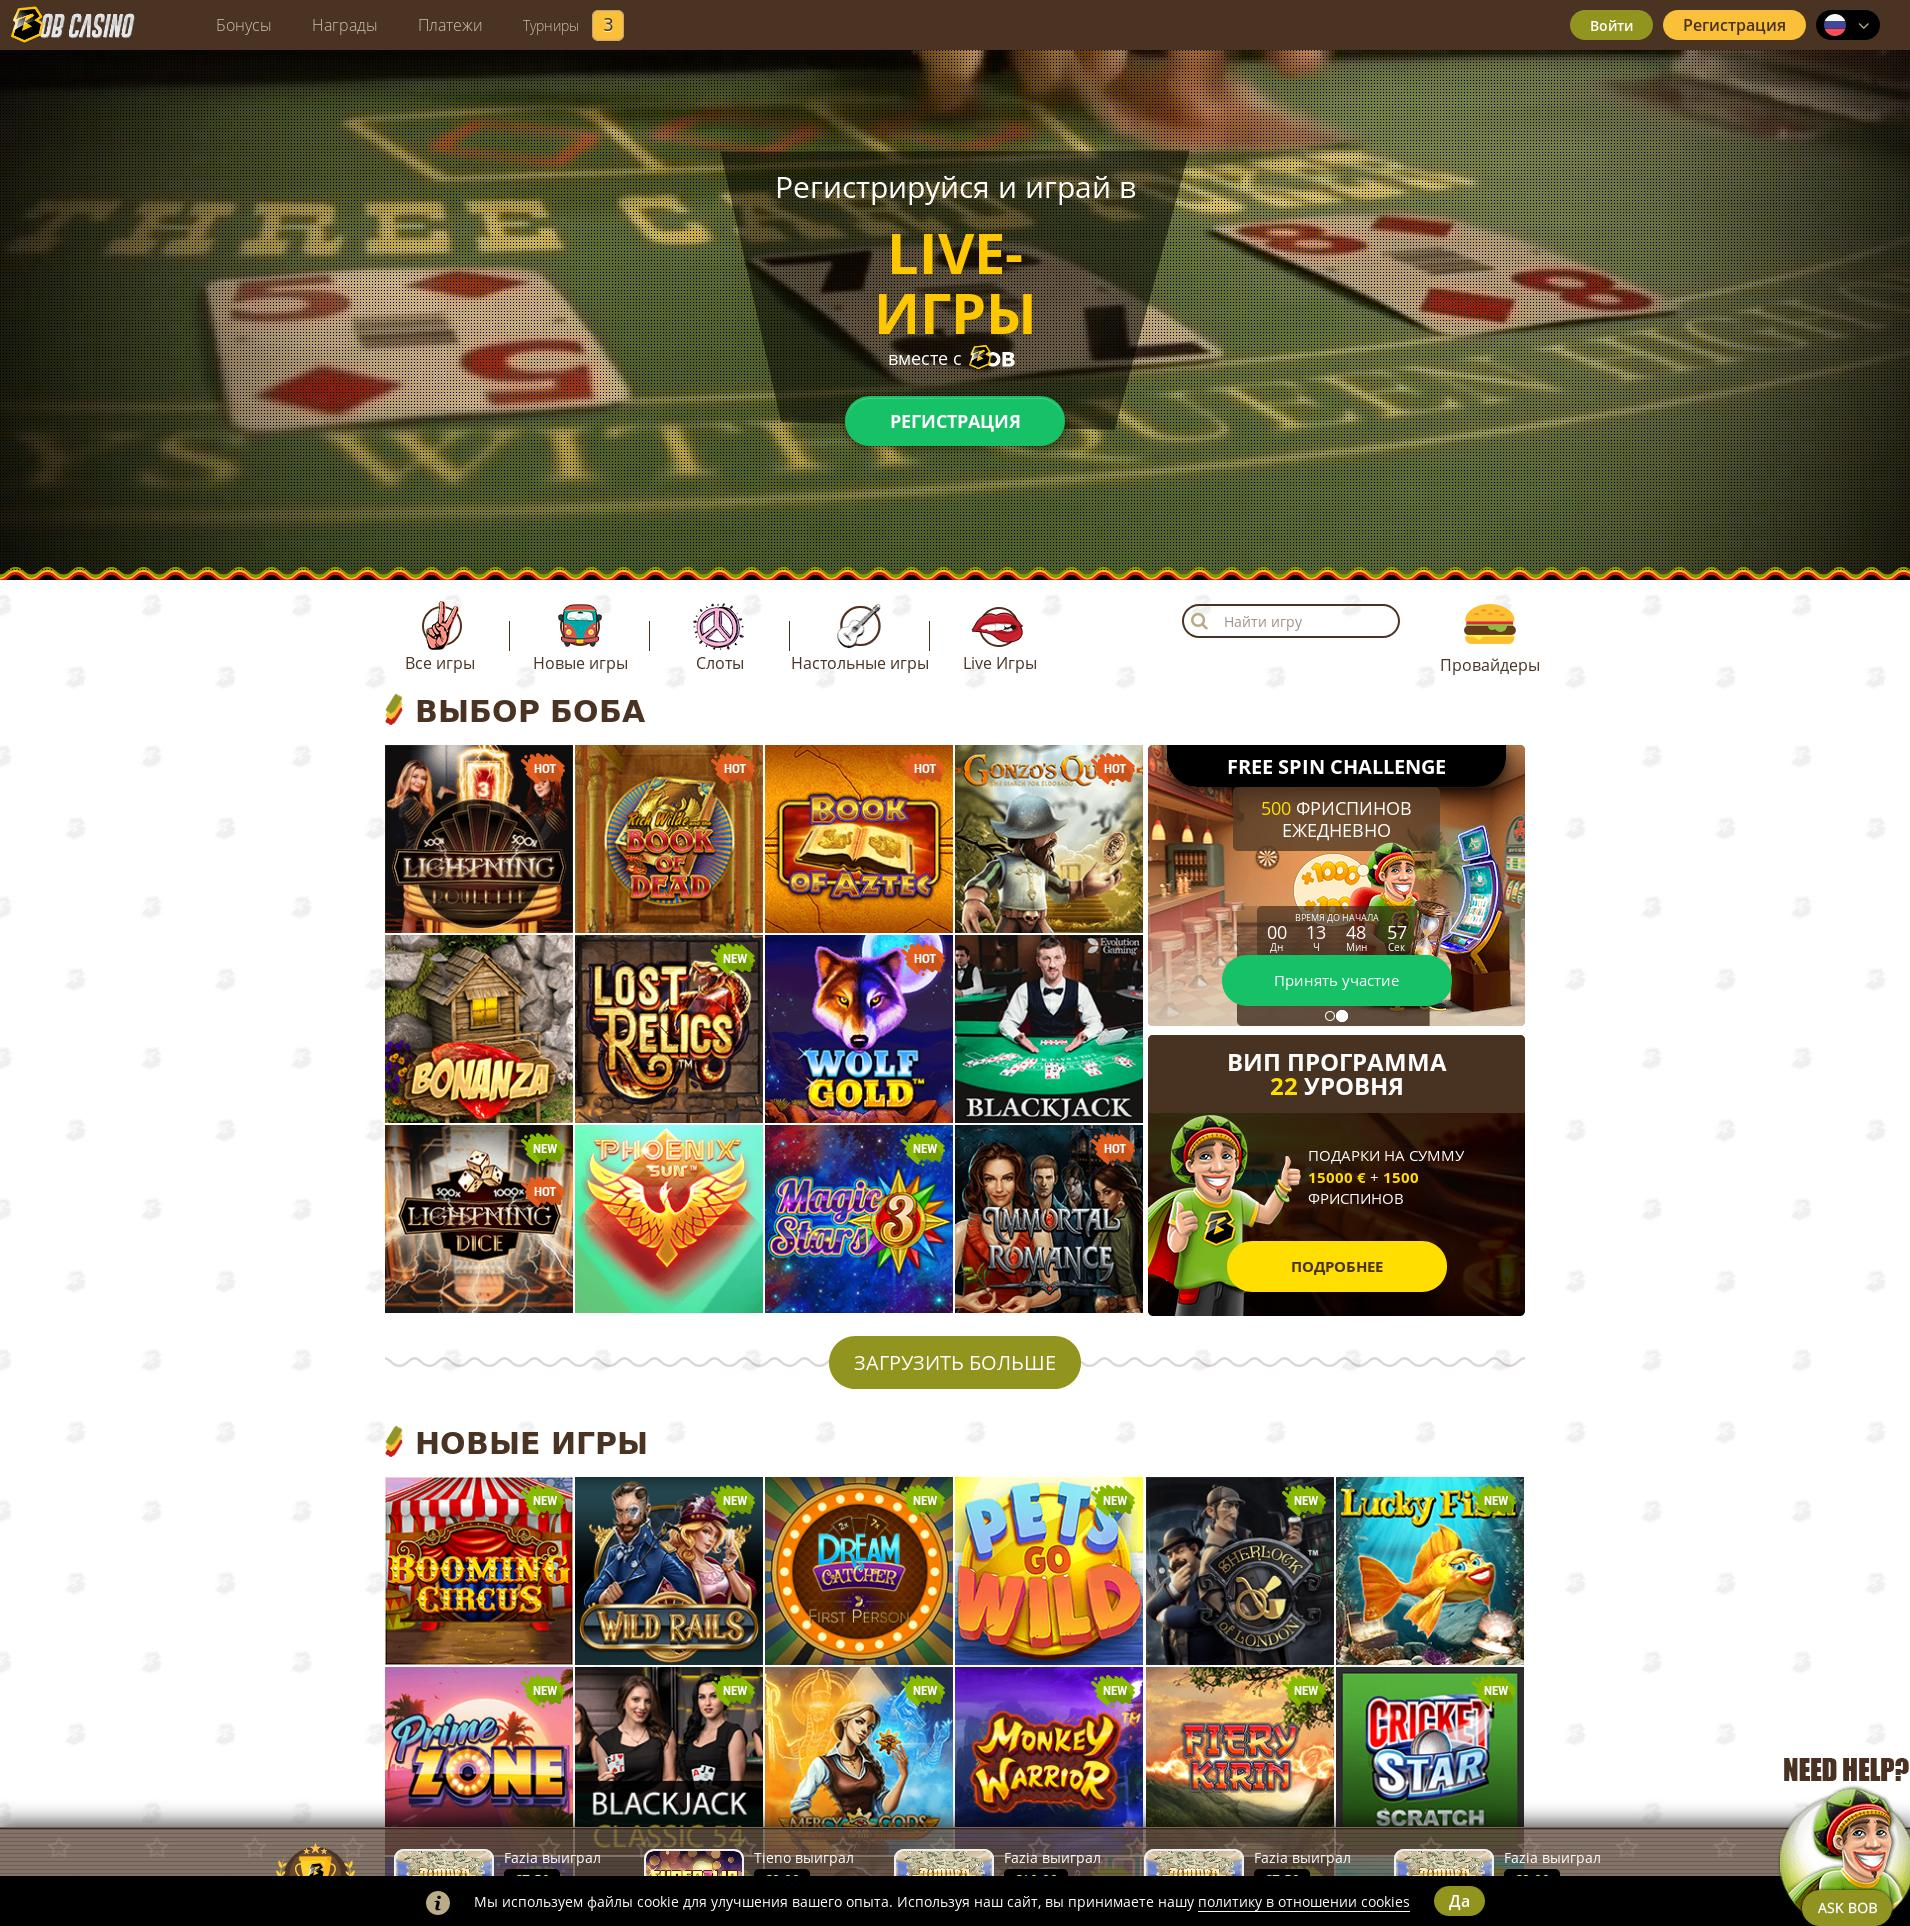 Casino screen Lobby 2019-07-16 for Russian Federation